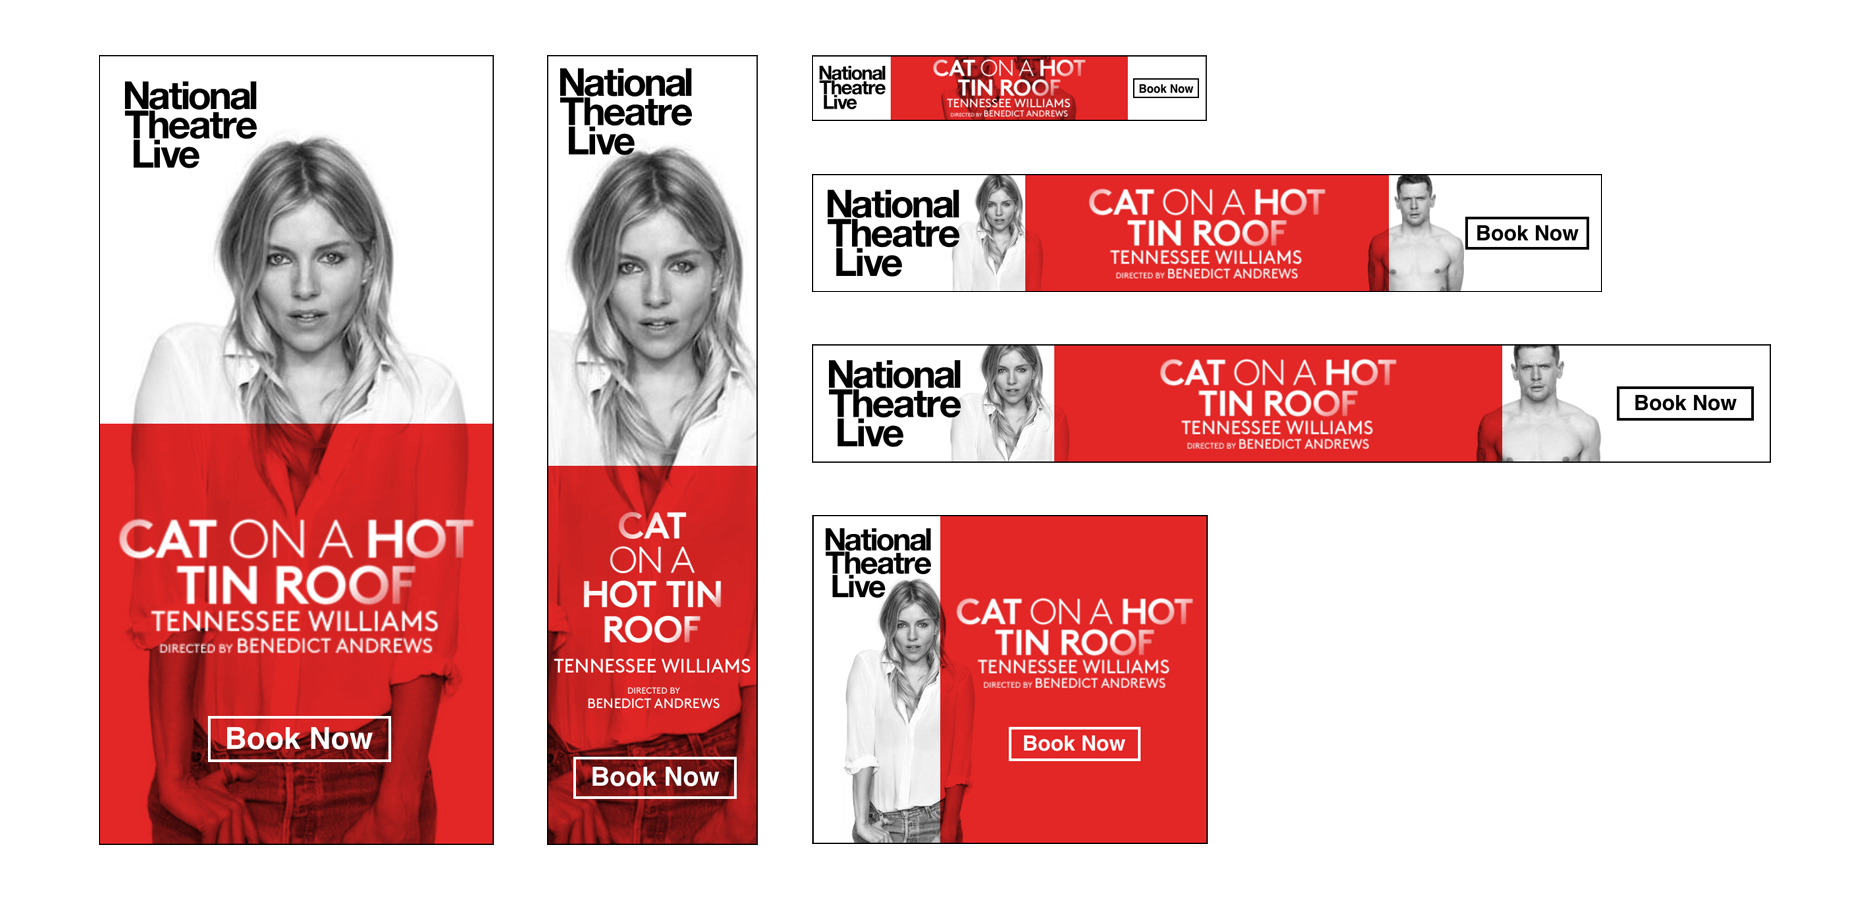 Cat on a Hit Tin Roof, National Theatre Live Banners